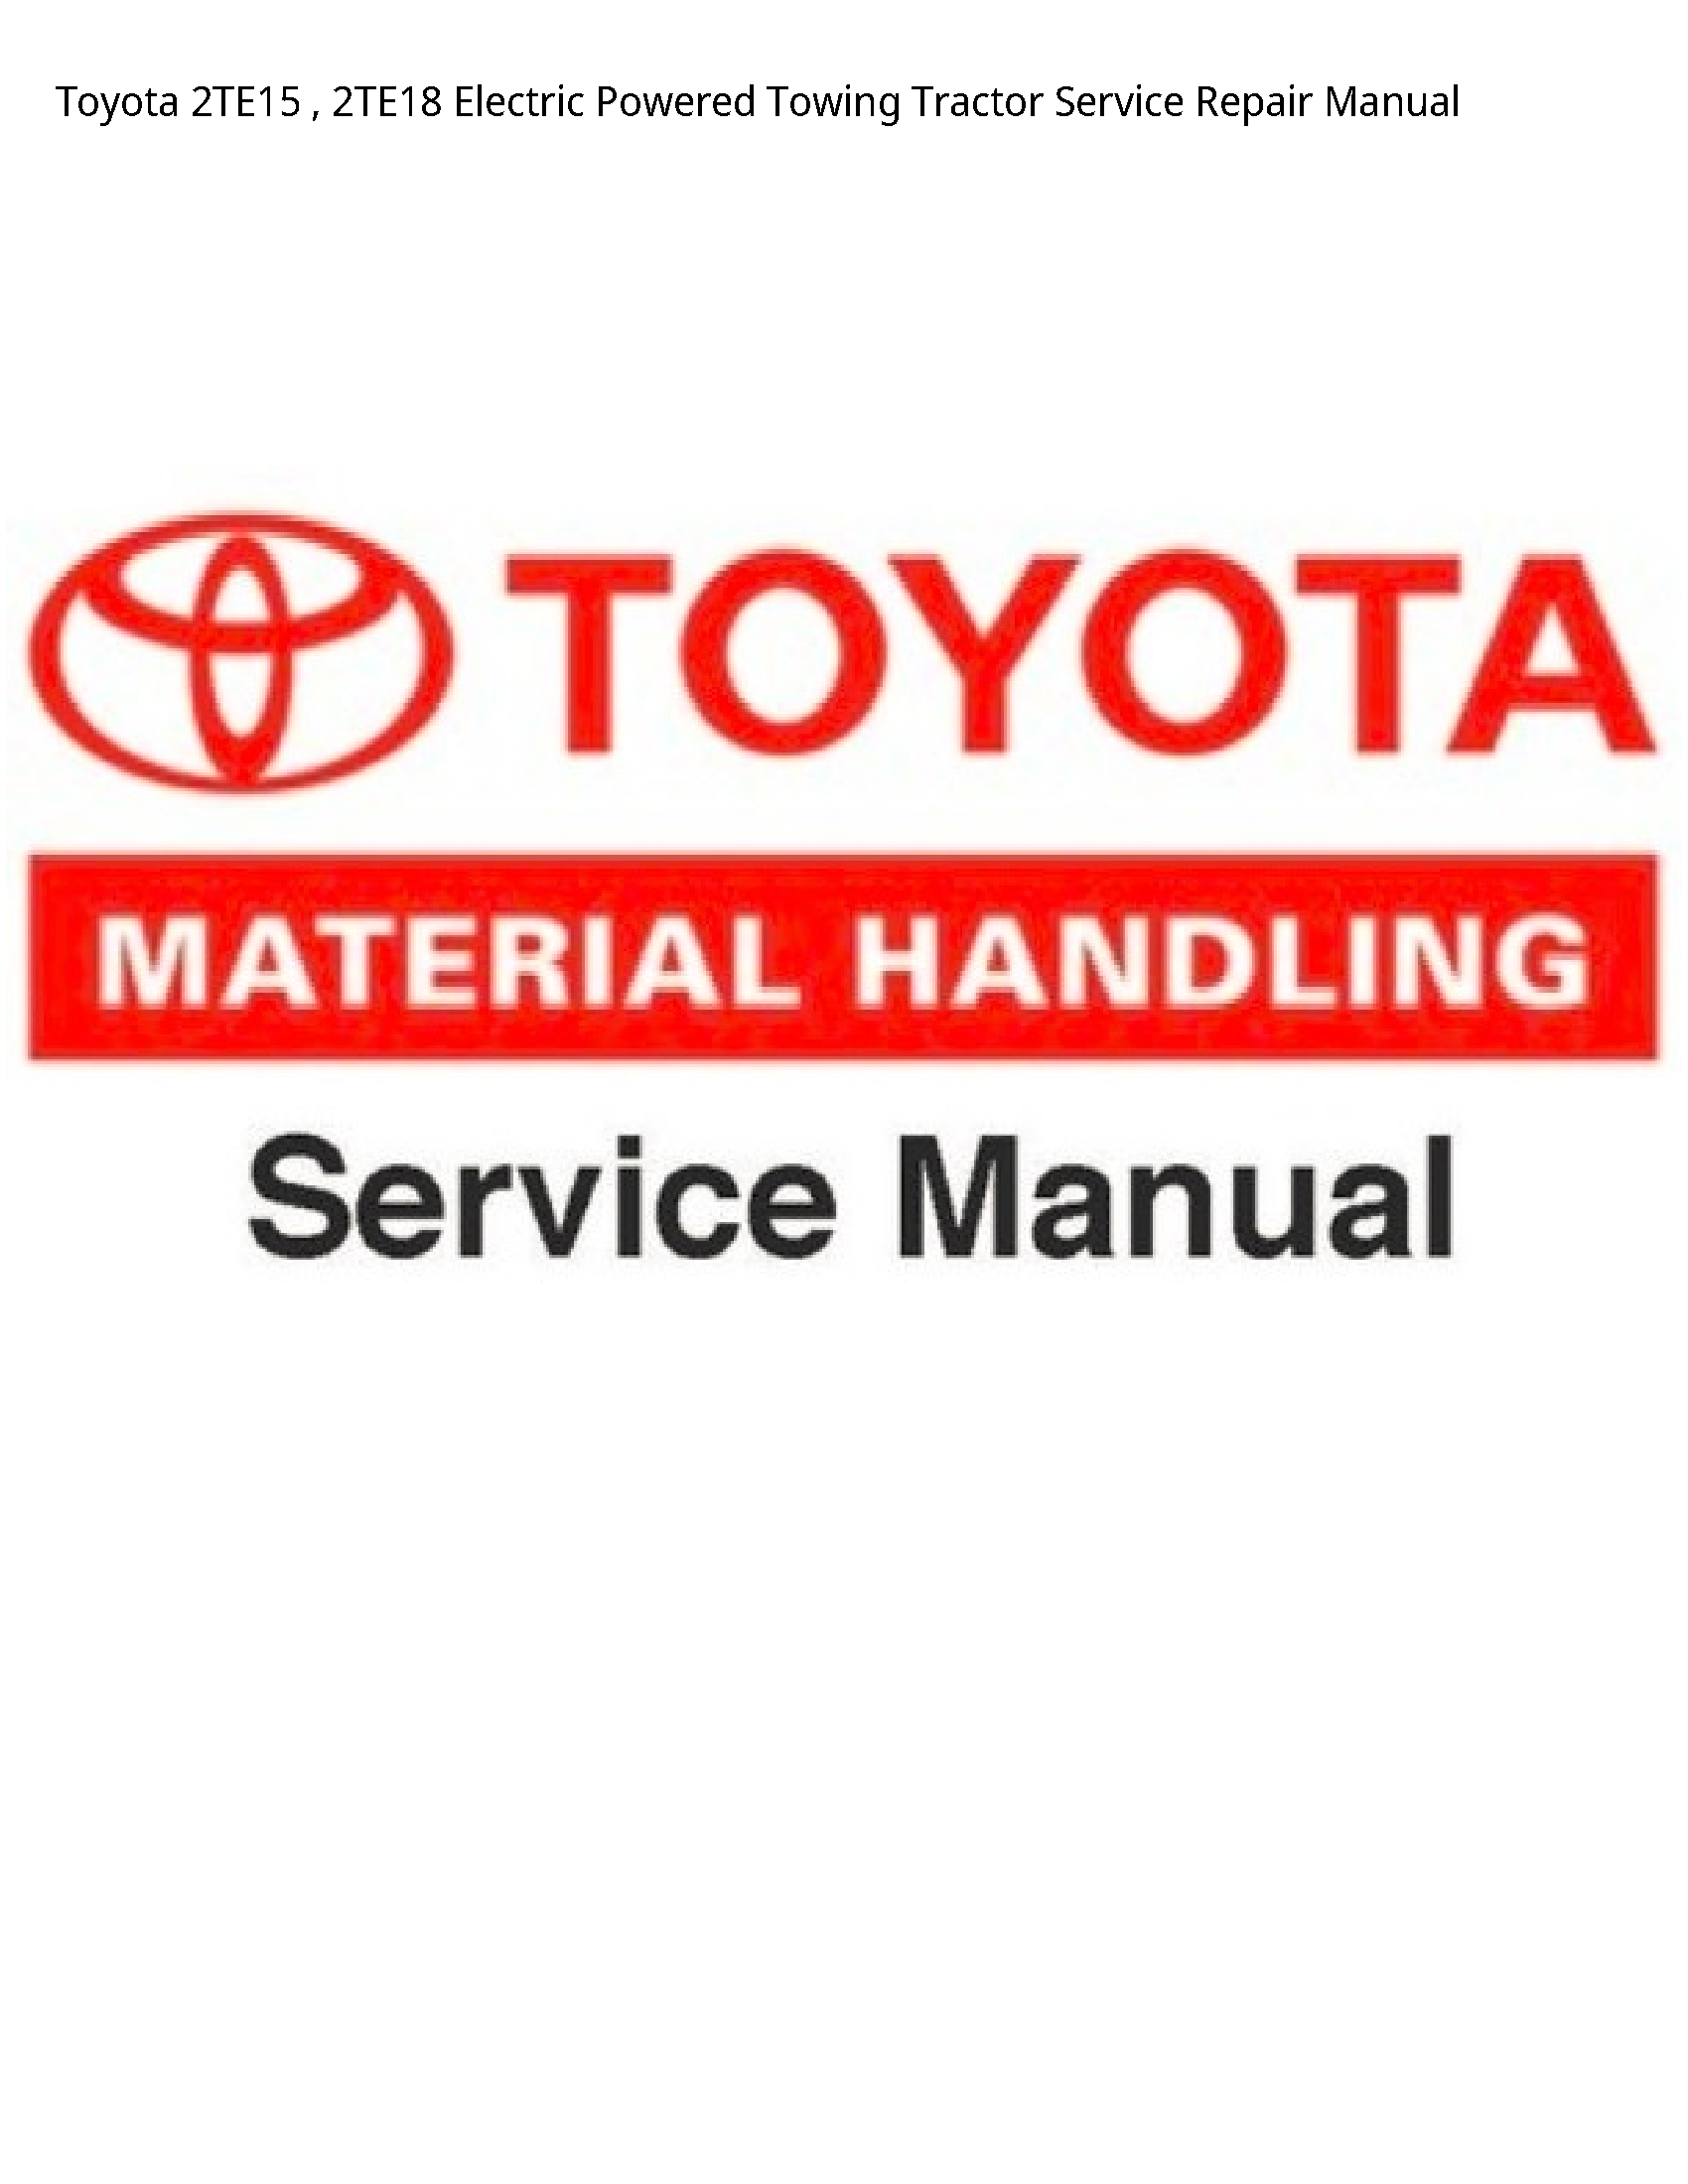 Toyota 2TE15 Electric Powered Towing Tractor manual